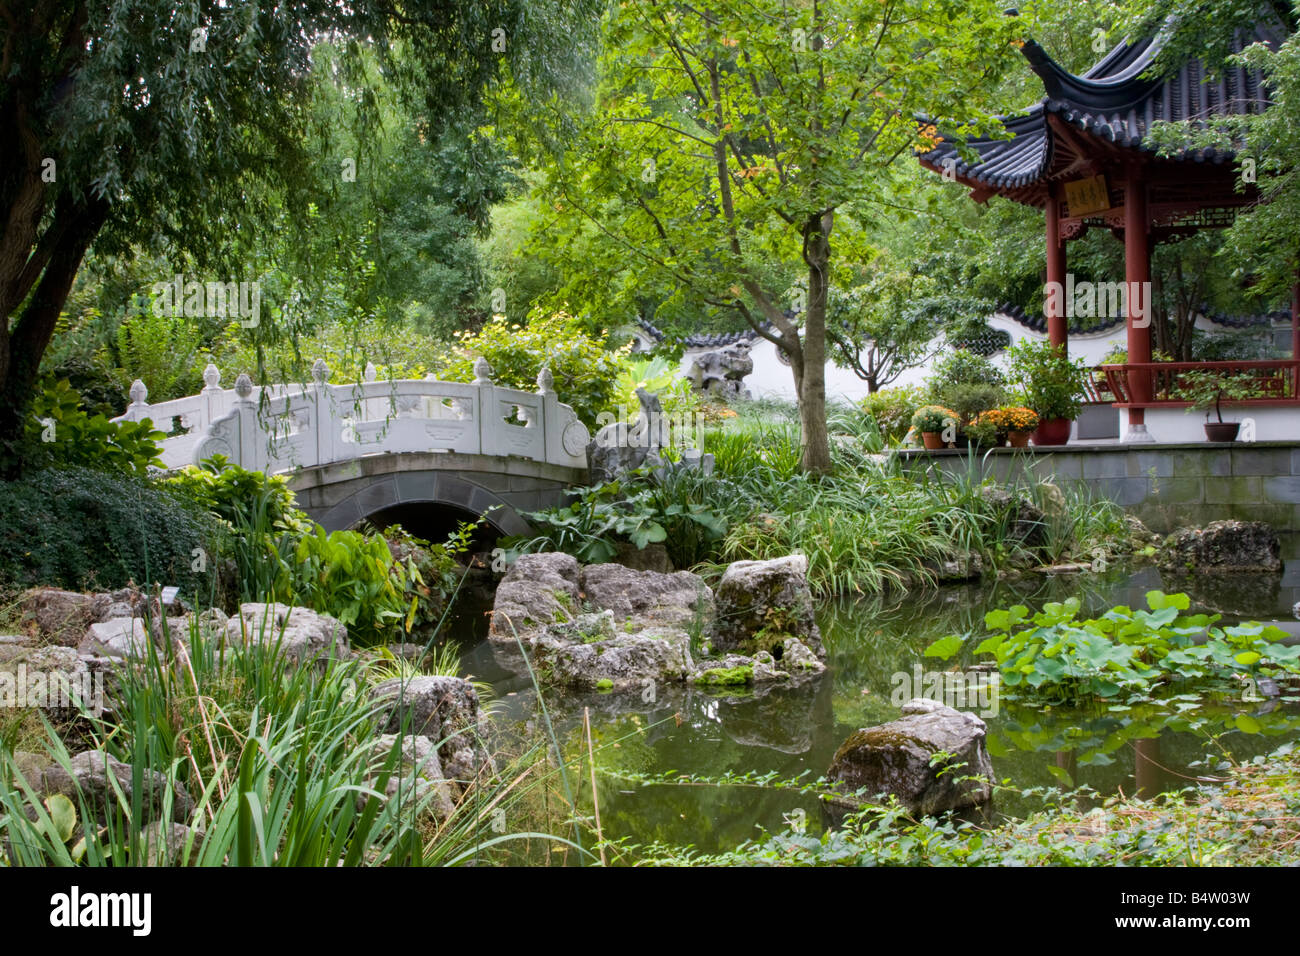 St louis missouri chinese garden missouri botanical - Missouri botanical garden st louis mo ...